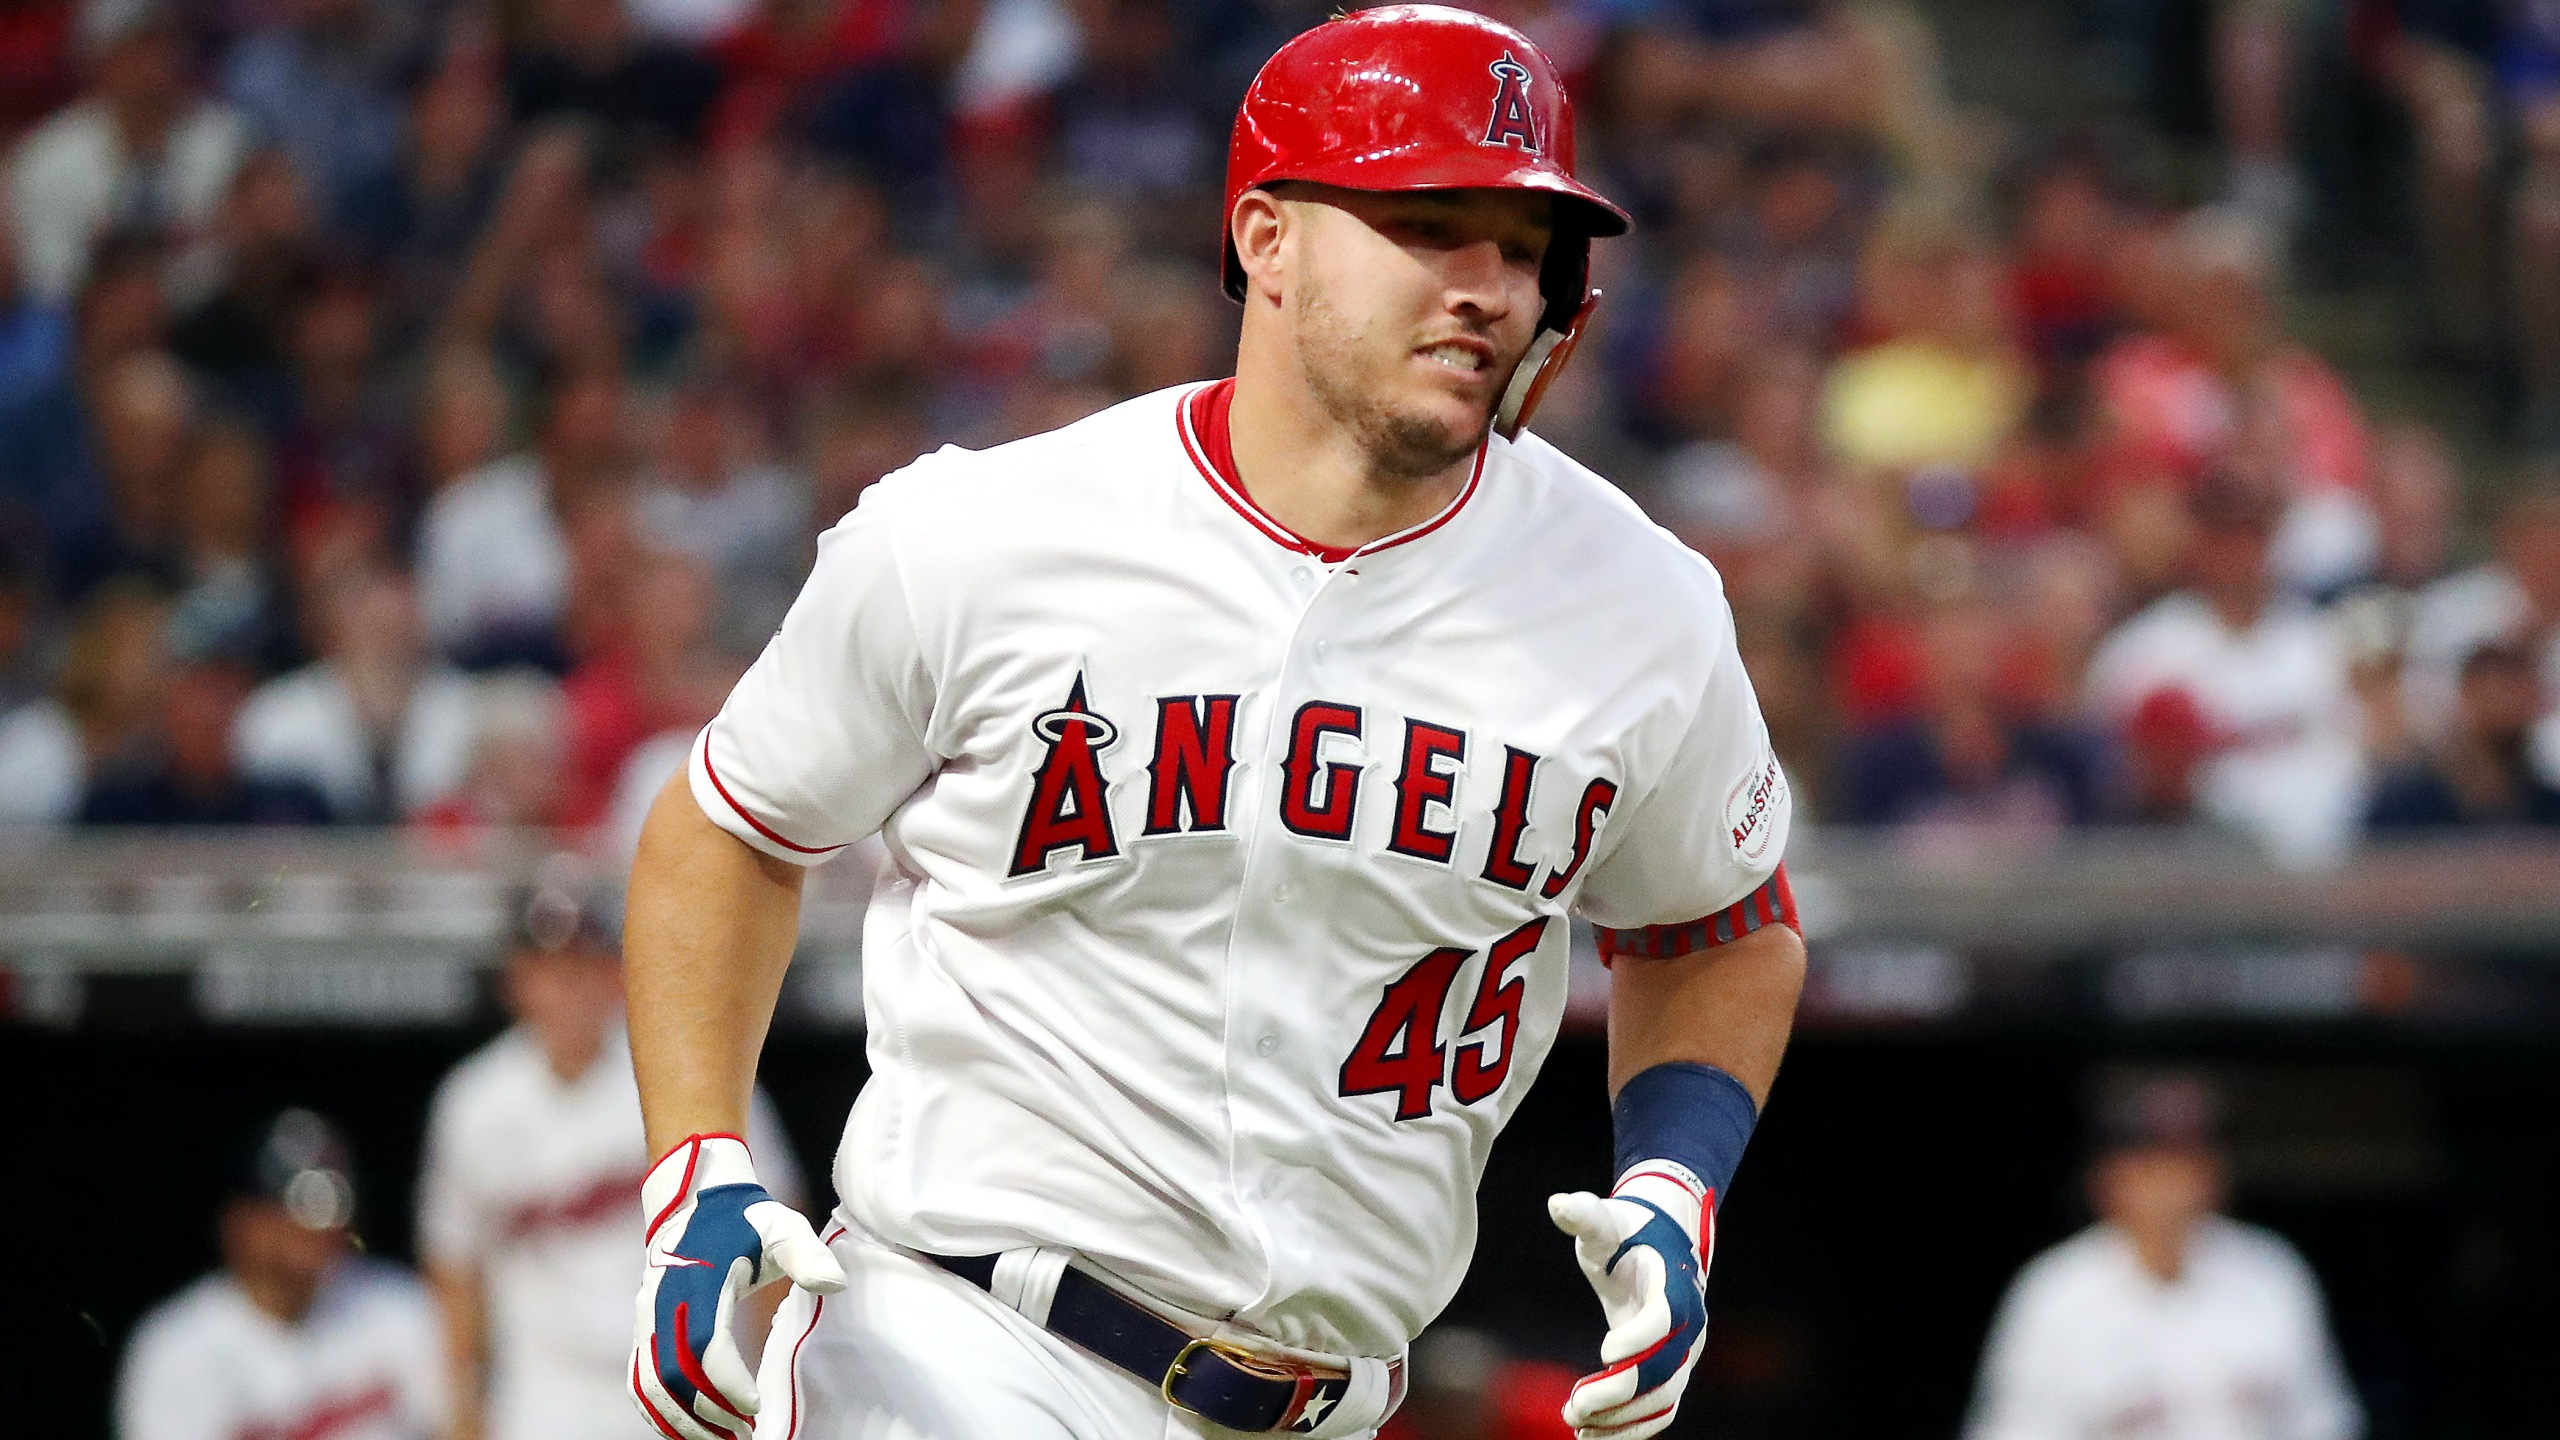 Mike Trout of the Los Angeles Angels and the American League wears No. 45 in honor of his late teammate Tyler Skaggs during the 2019 MLB All-Star Game in Cleveland, Ohio, on July 9, 2019. (Credit: Gregory Shamus / Getty Images)